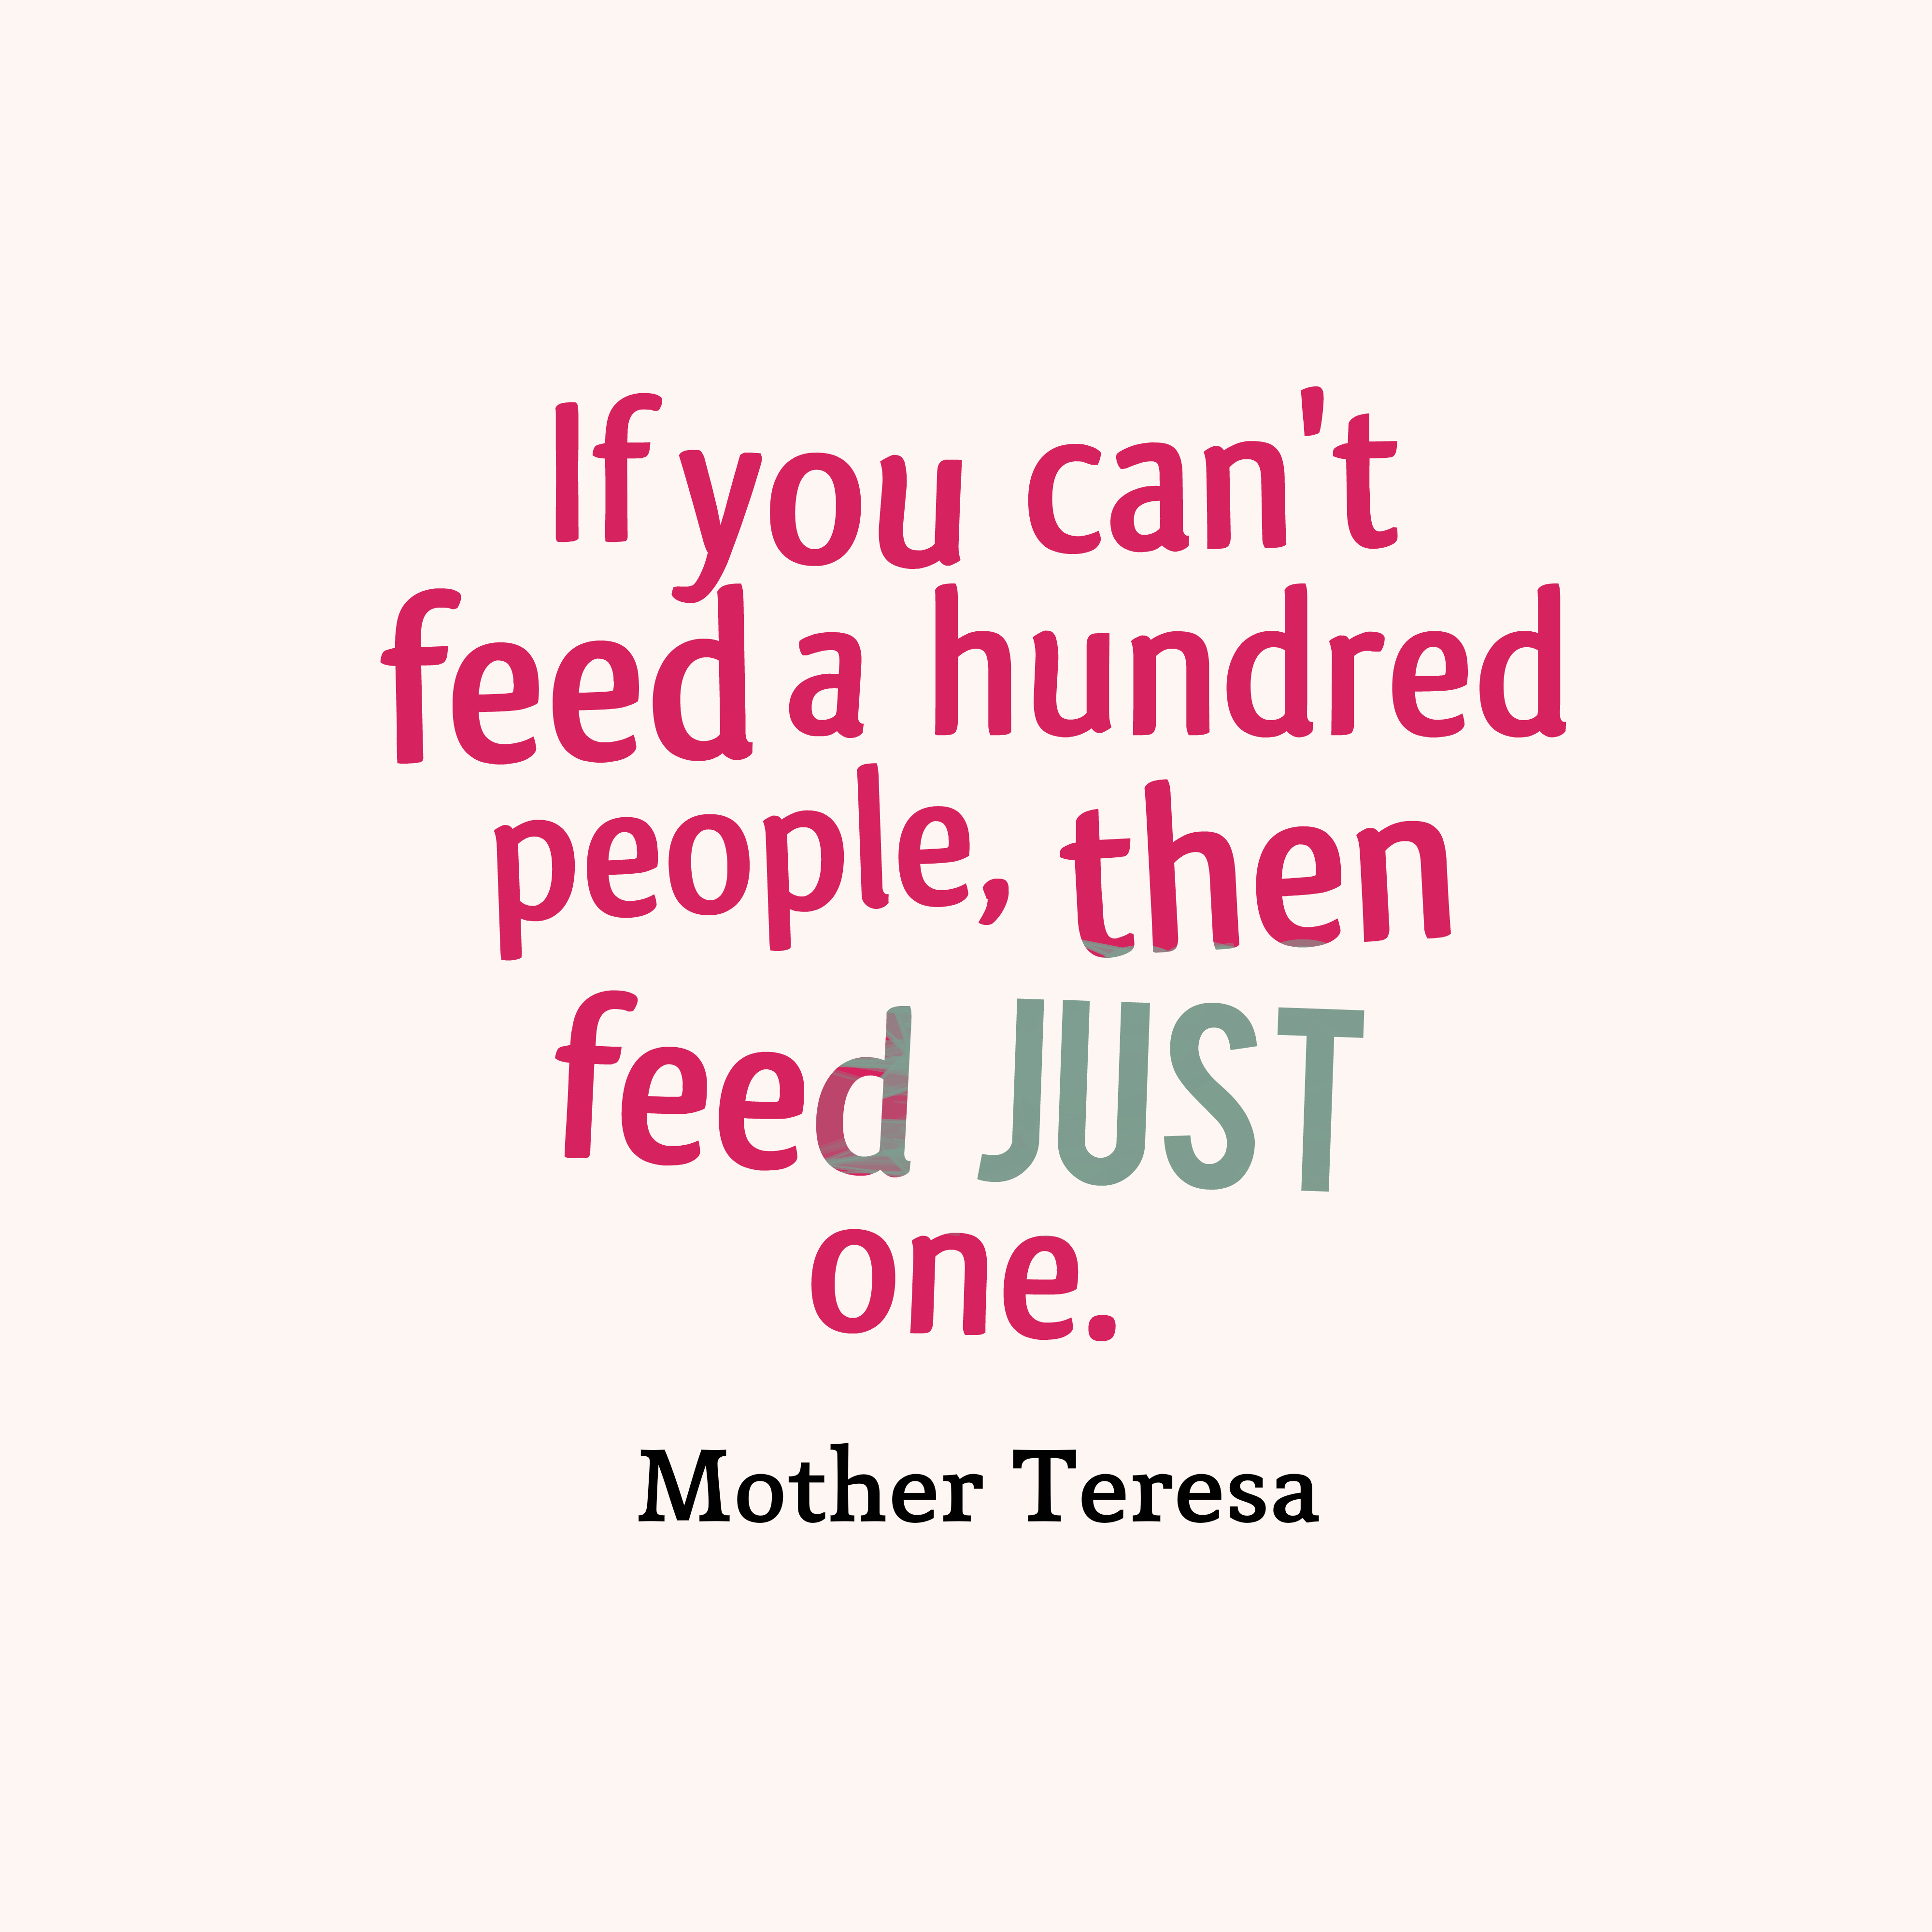 Quotes image of If you can't feed a hundred people, then feed just one.